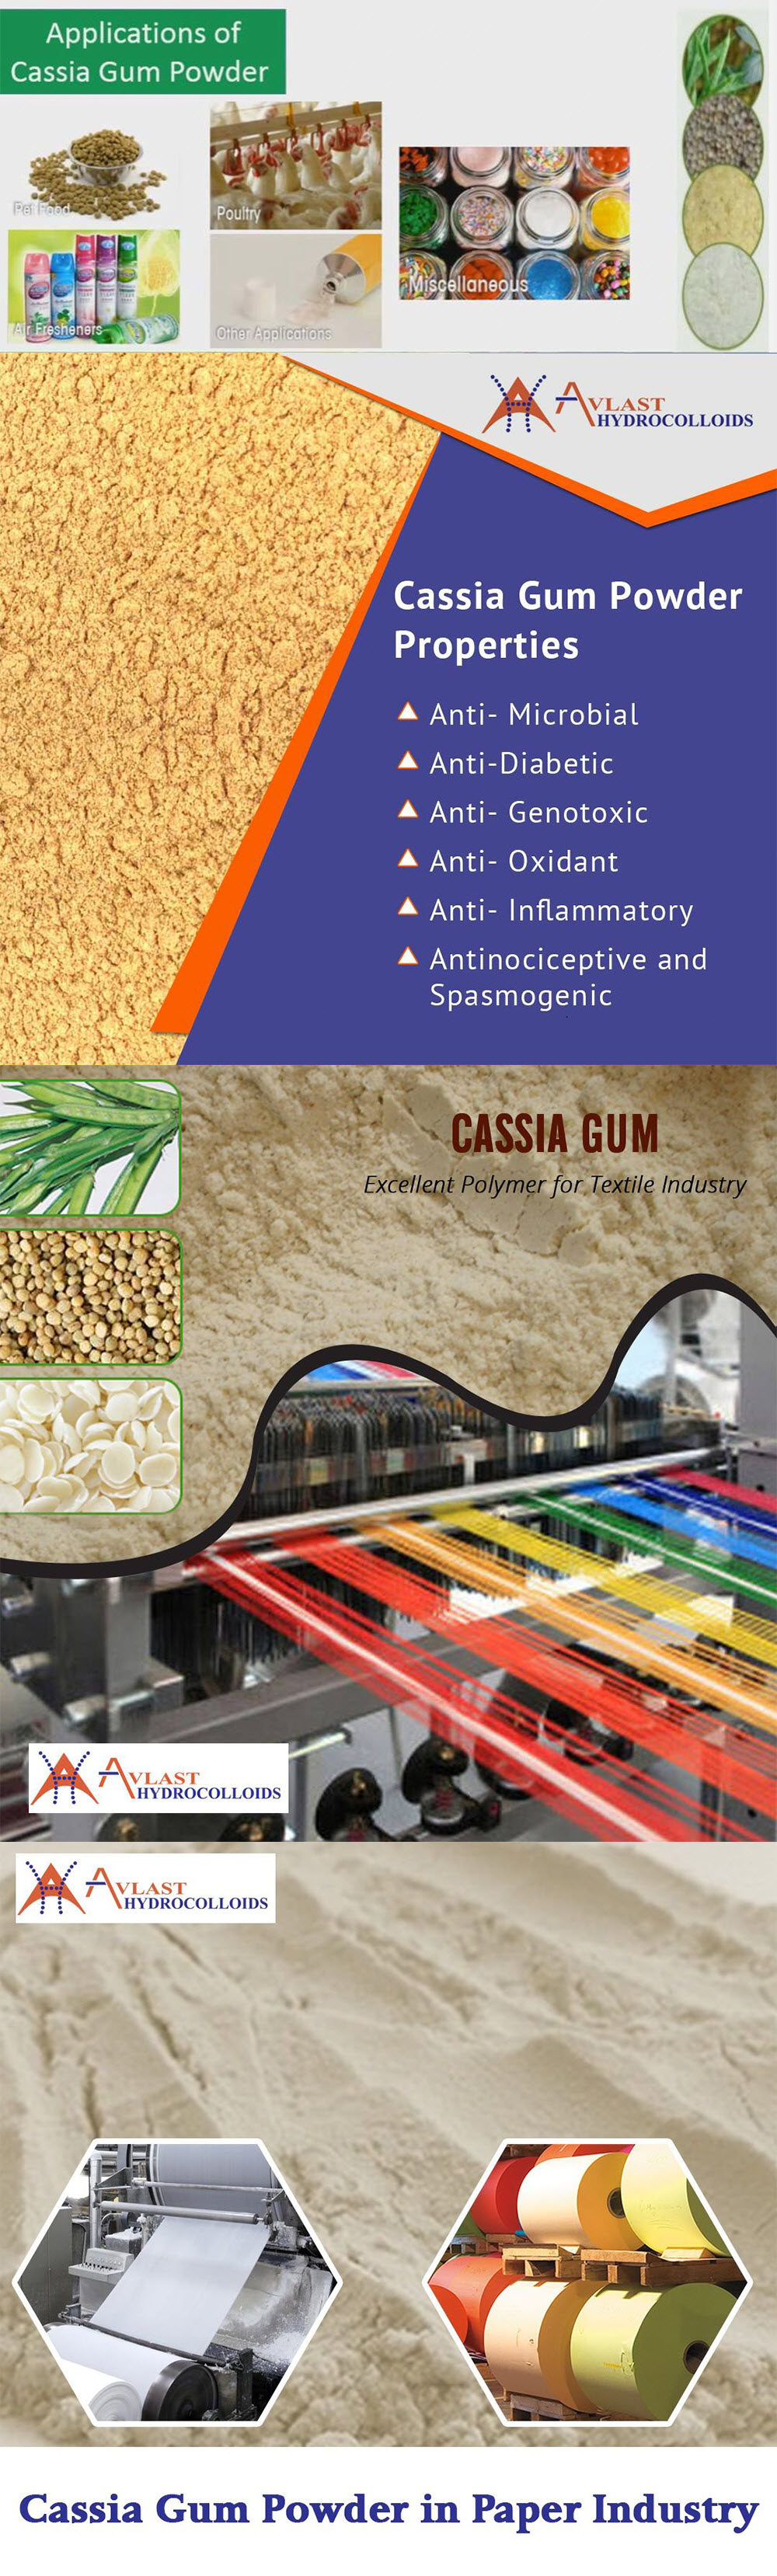 Roles & Uses of Cassia Gum Powder in Industries